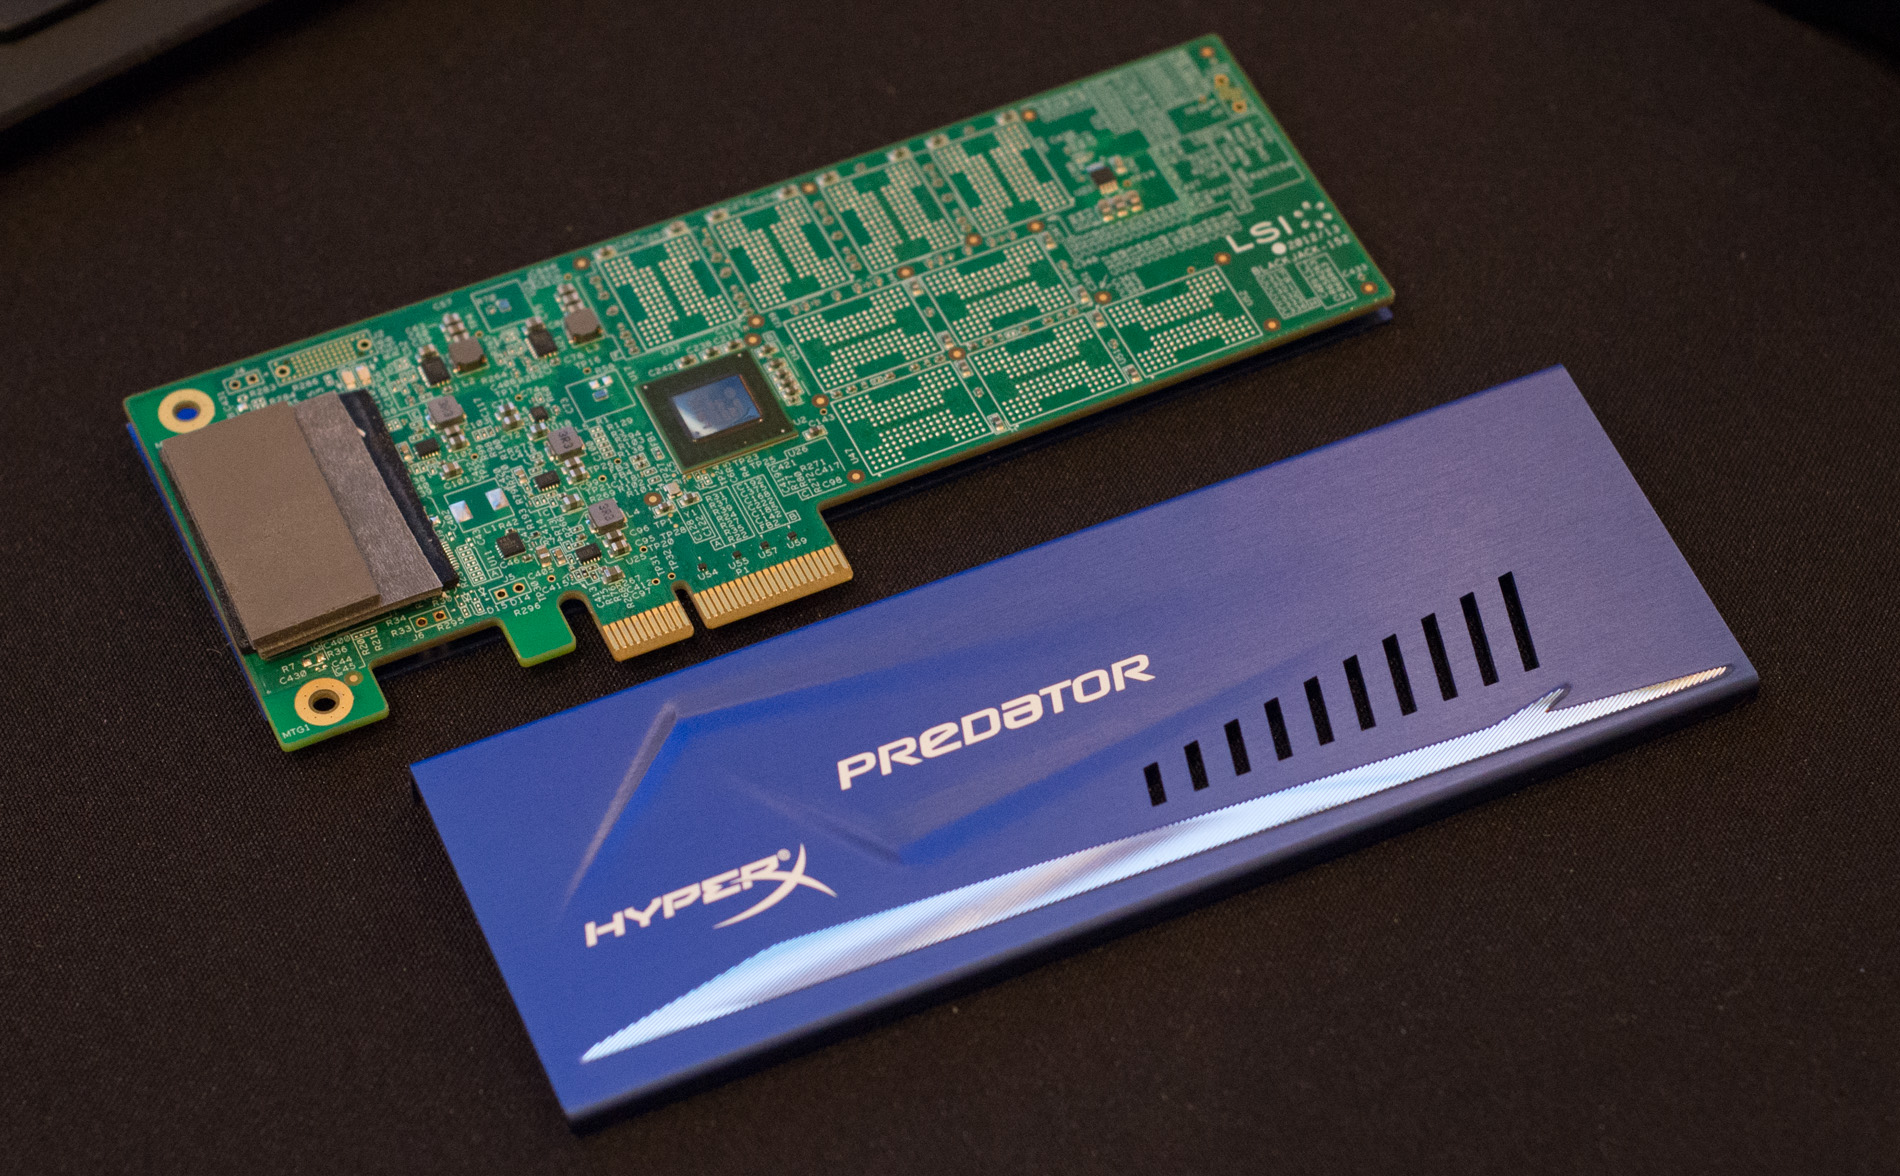 Kingston @ CES 2014: LSI SF3700 PCIe SSD Benchmarked and More